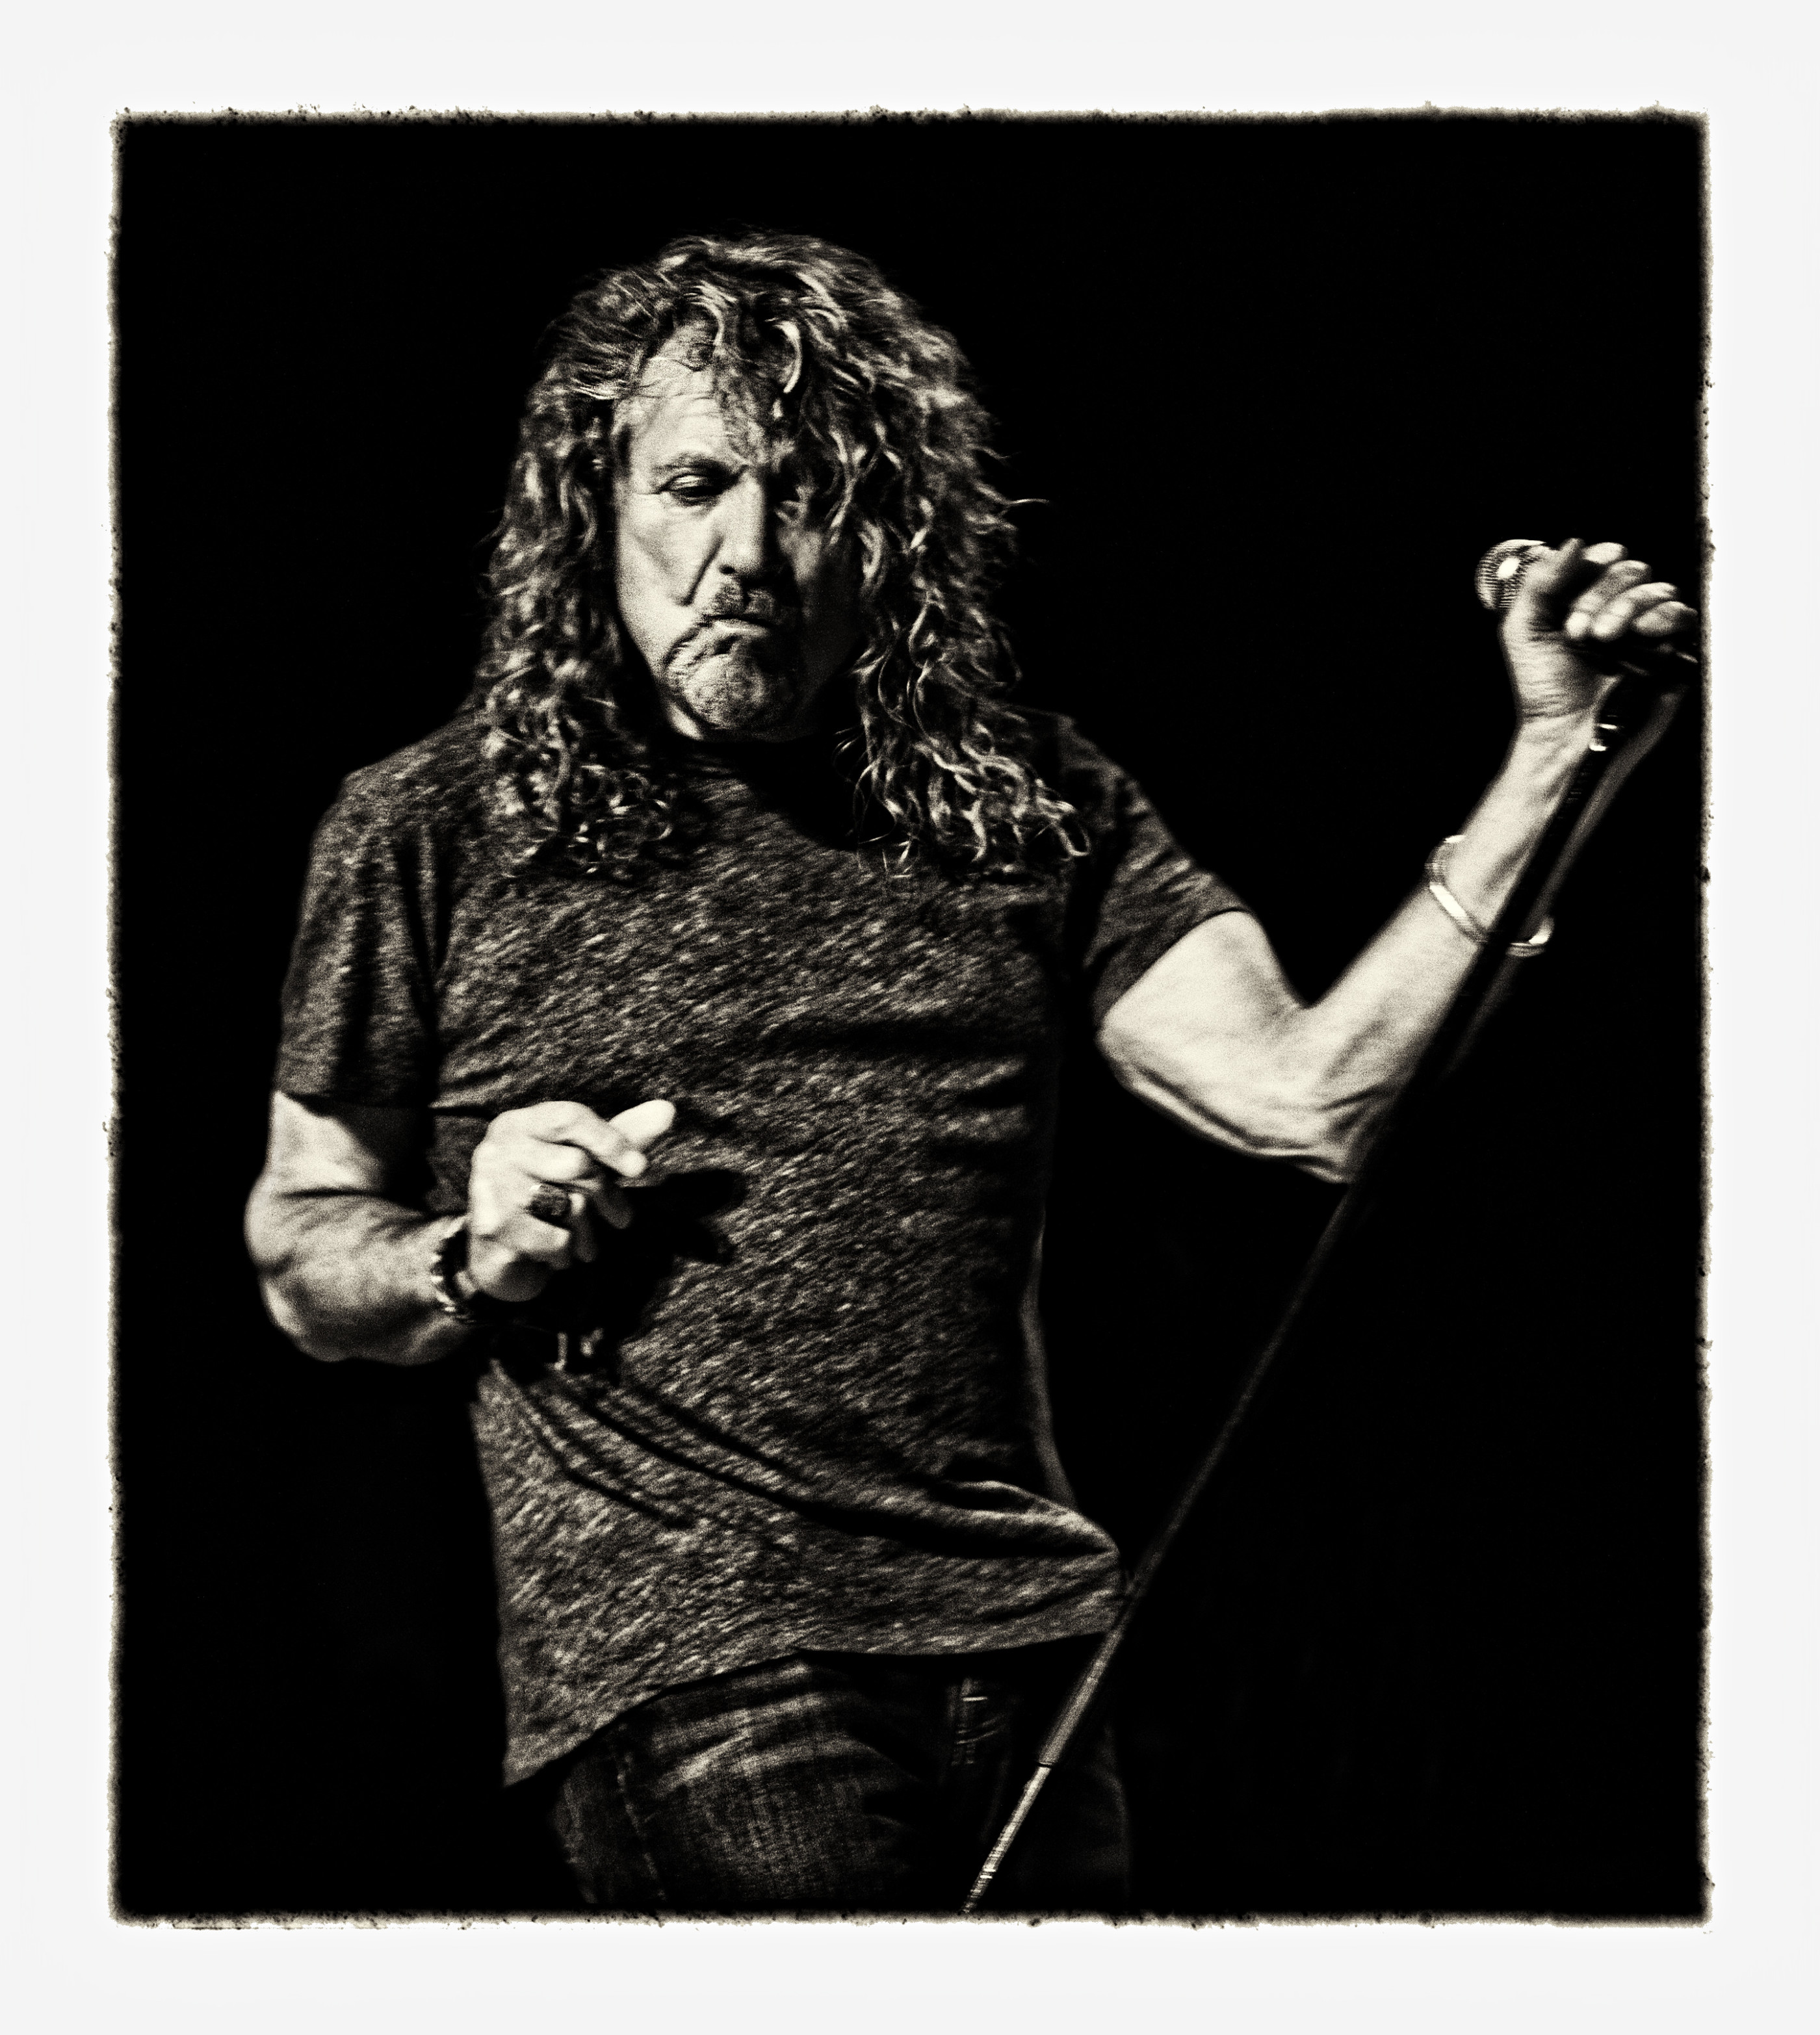 Robert Plant by Ash Newell Photography